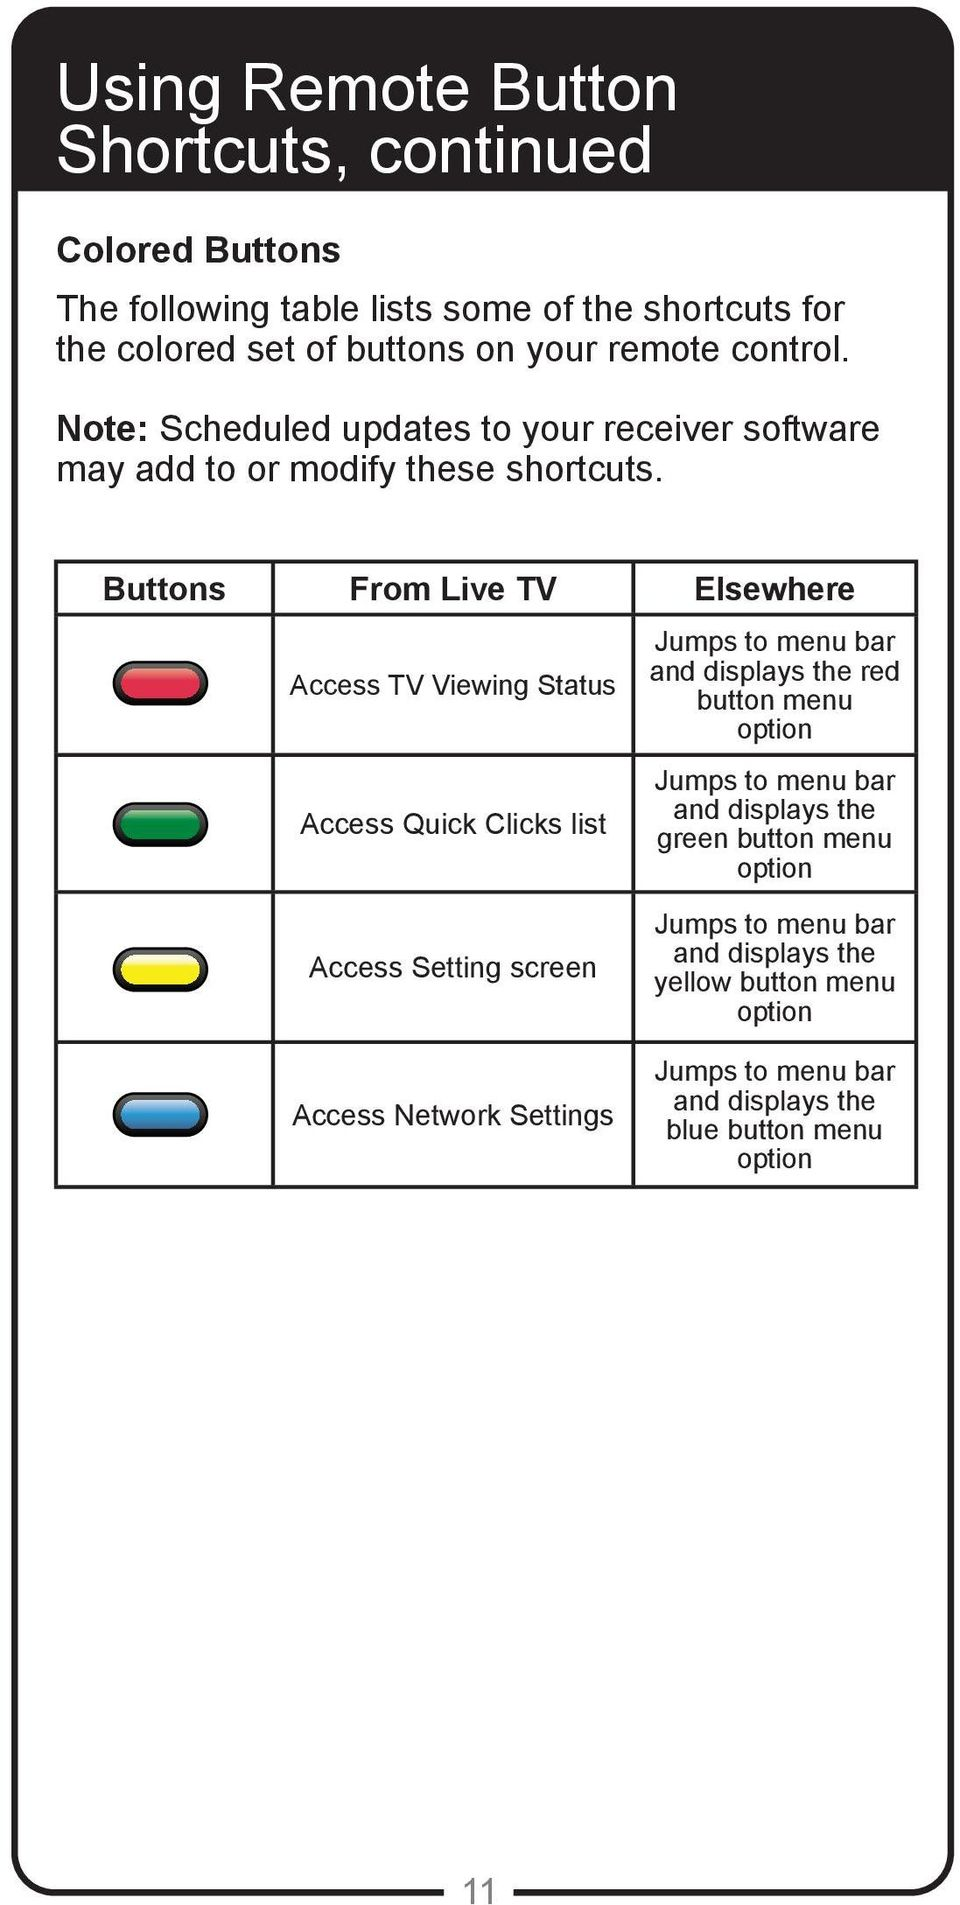 Buttons From Live TV Elsewhere Access TV Viewing Status Access Quick Clicks list Jumps to menu bar and displays the red button menu option Jumps to menu